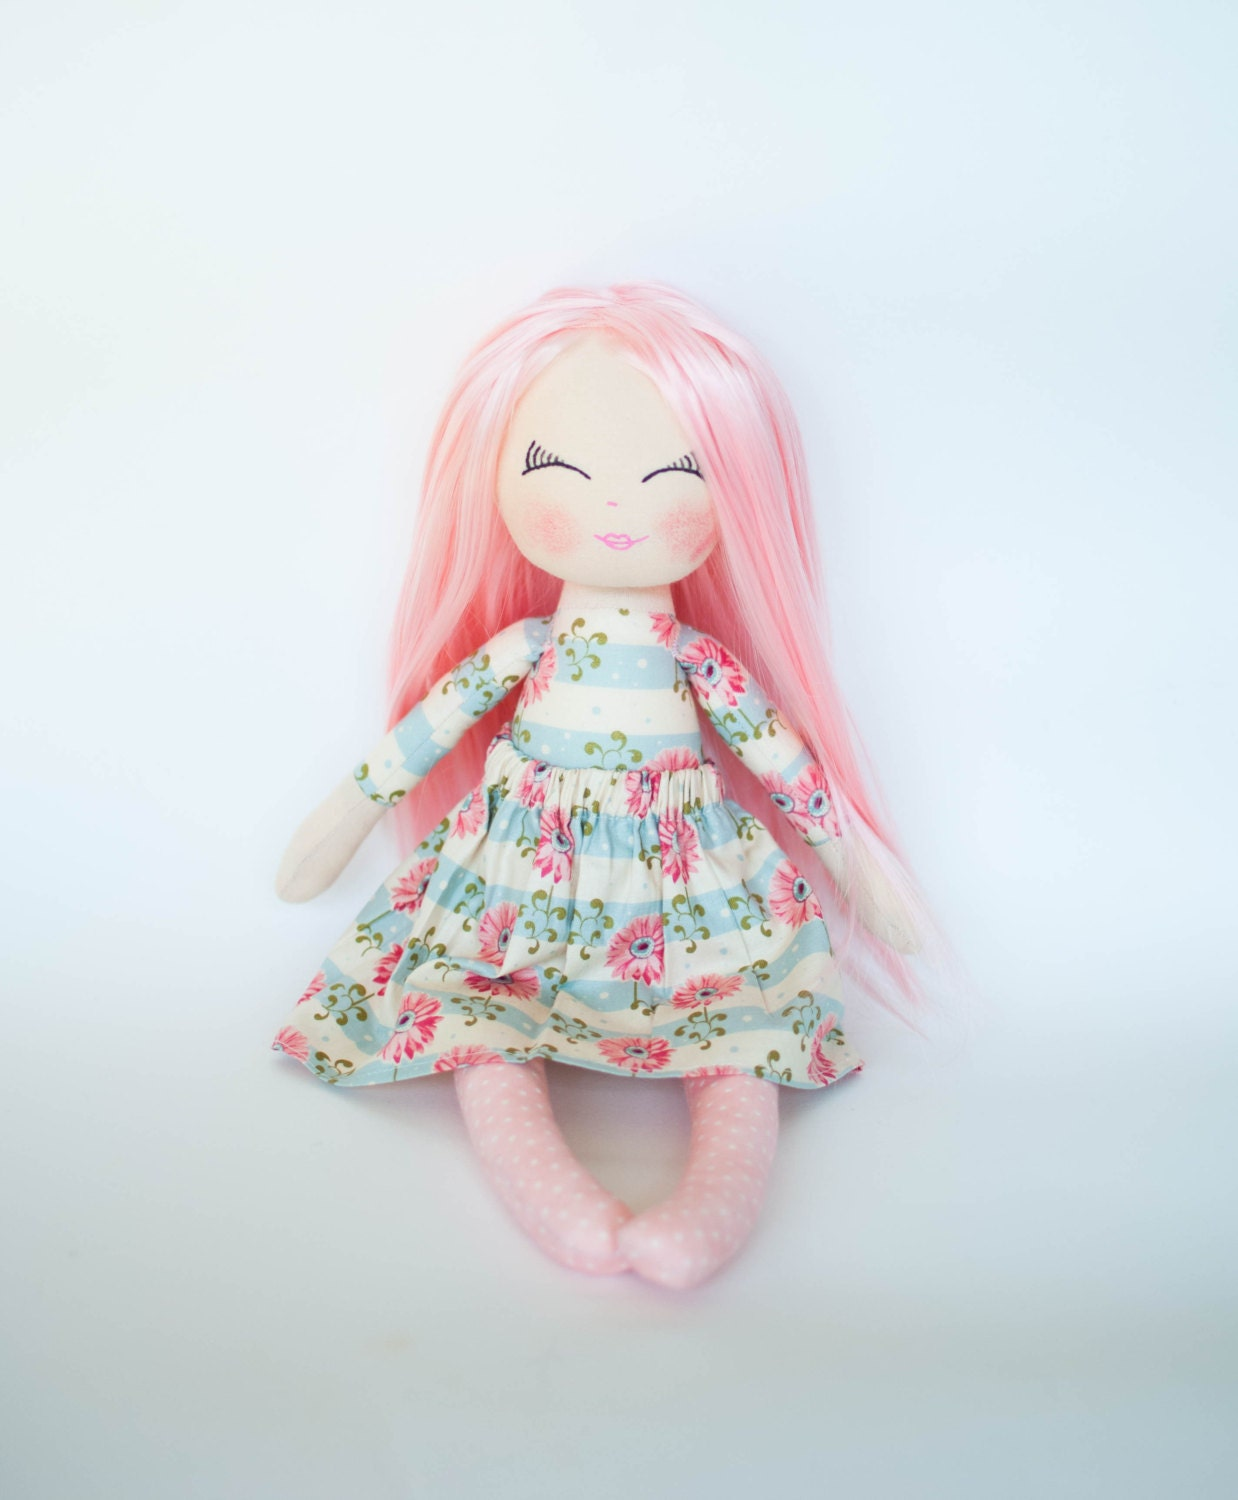 Doll With Pink Hair Rag Doll Cloth Doll Gift For Little